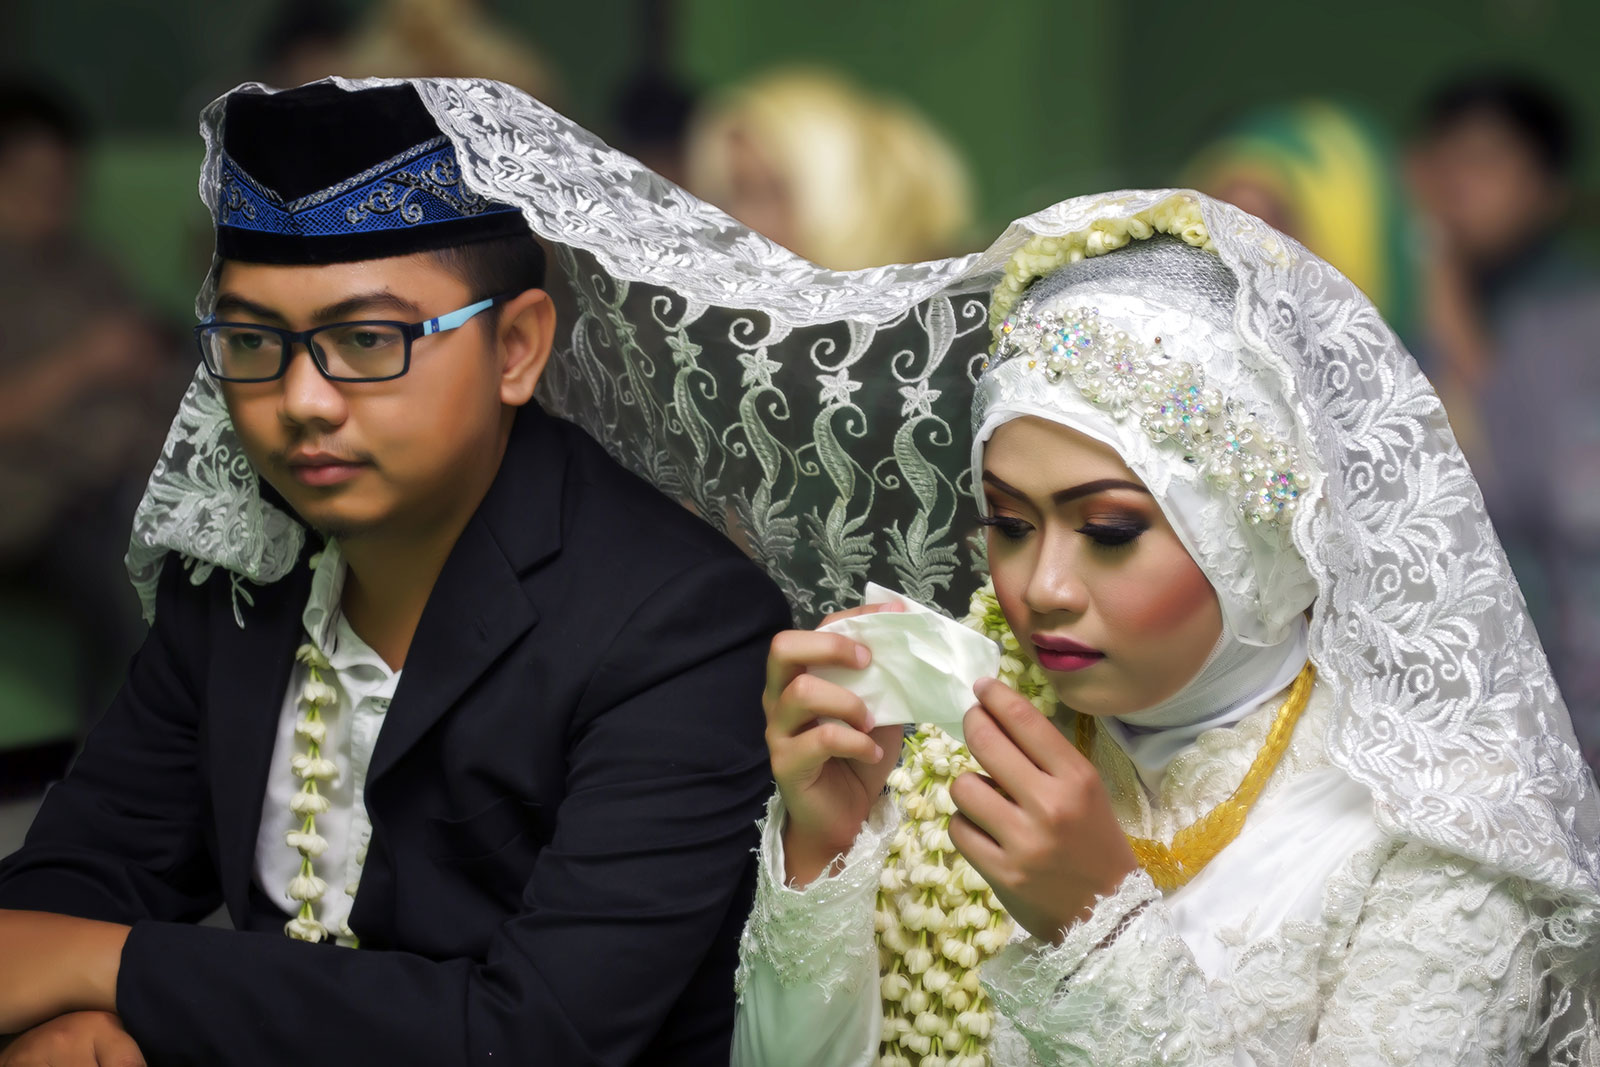 Ubeb & Dyah wedding photography